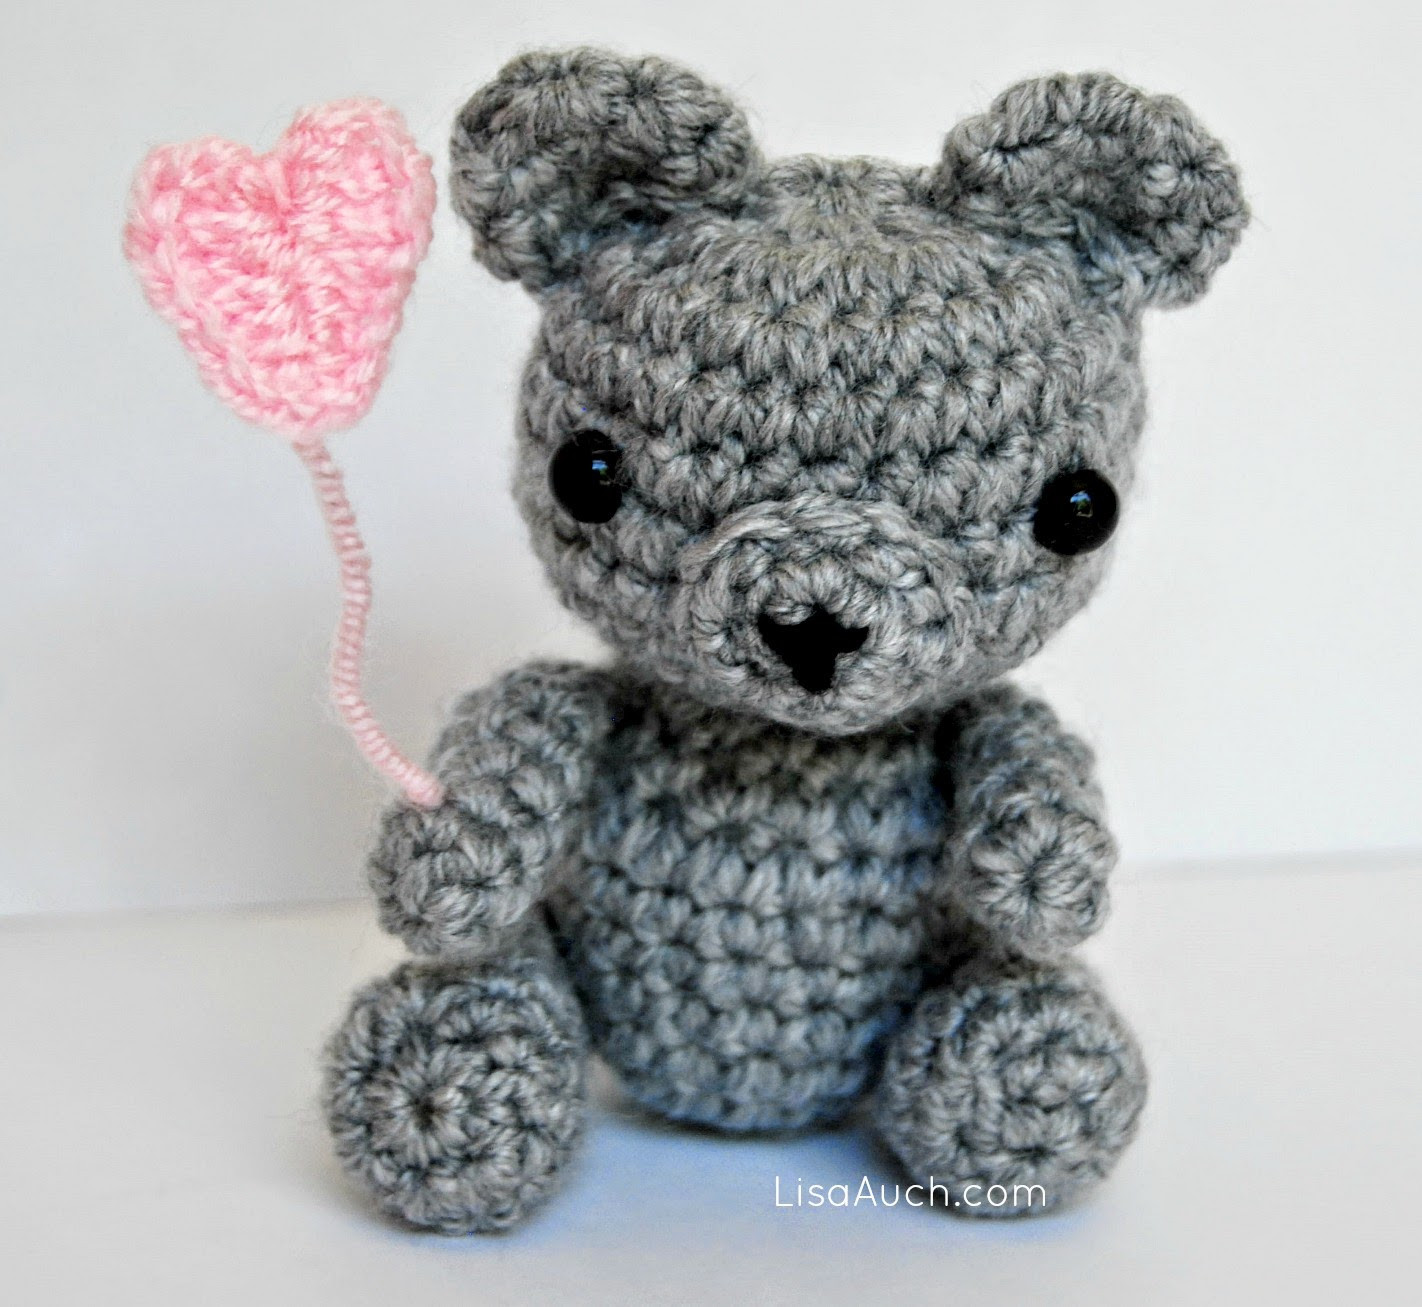 Free Crochet Teddy Bear Pattern Fresh Free Crochet Patterns and Designs by Lisaauch Free Of Top 45 Photos Free Crochet Teddy Bear Pattern